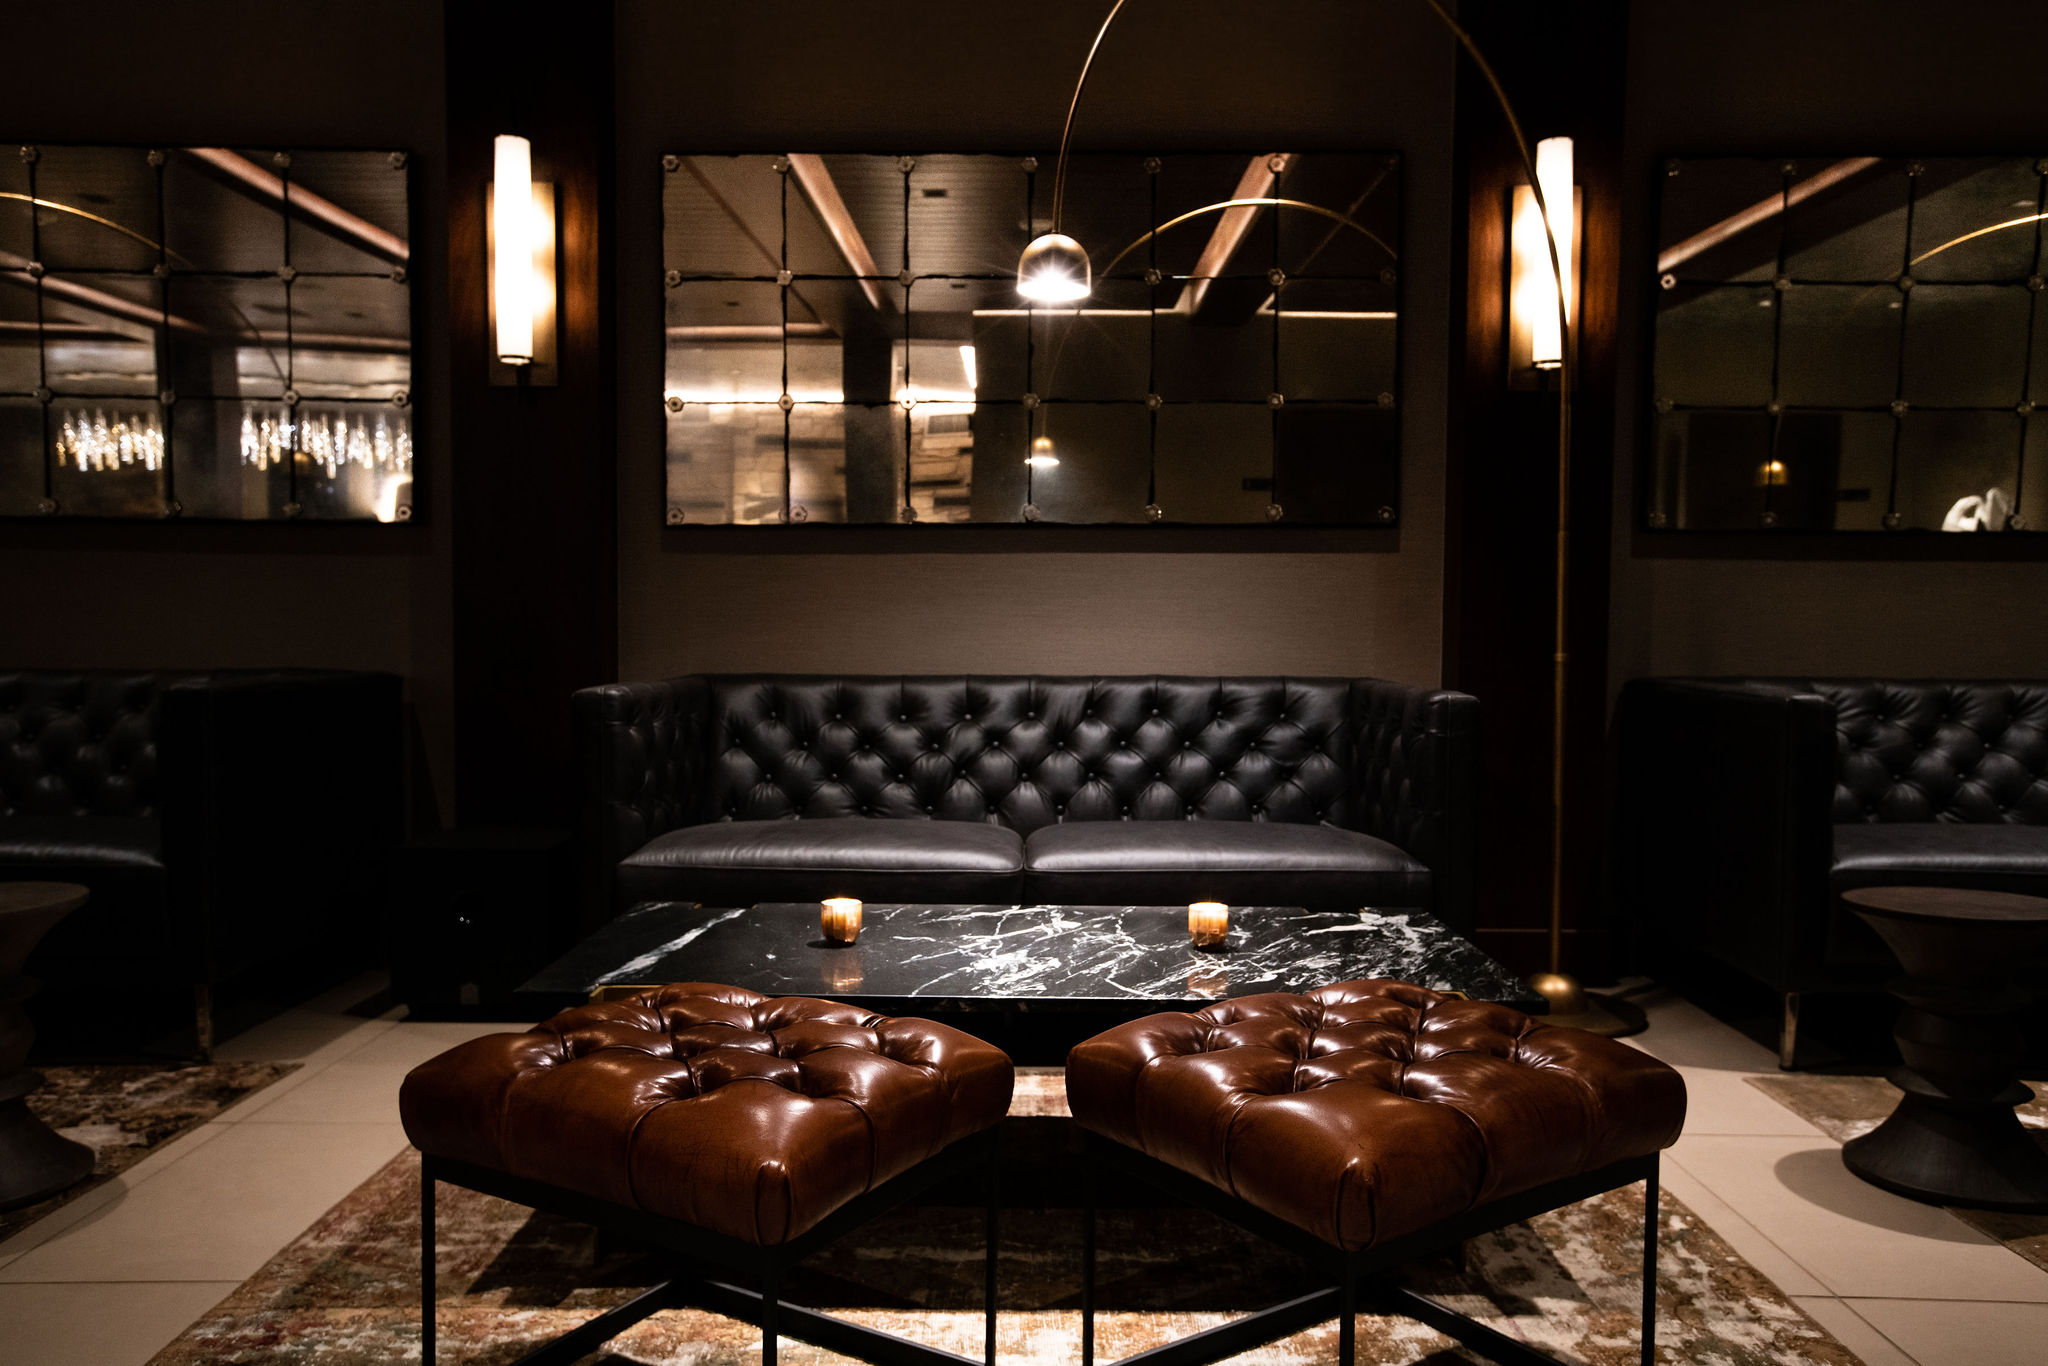 Interior of a high end cocktail lounge with leather couches and ottomans in a dimly lit room